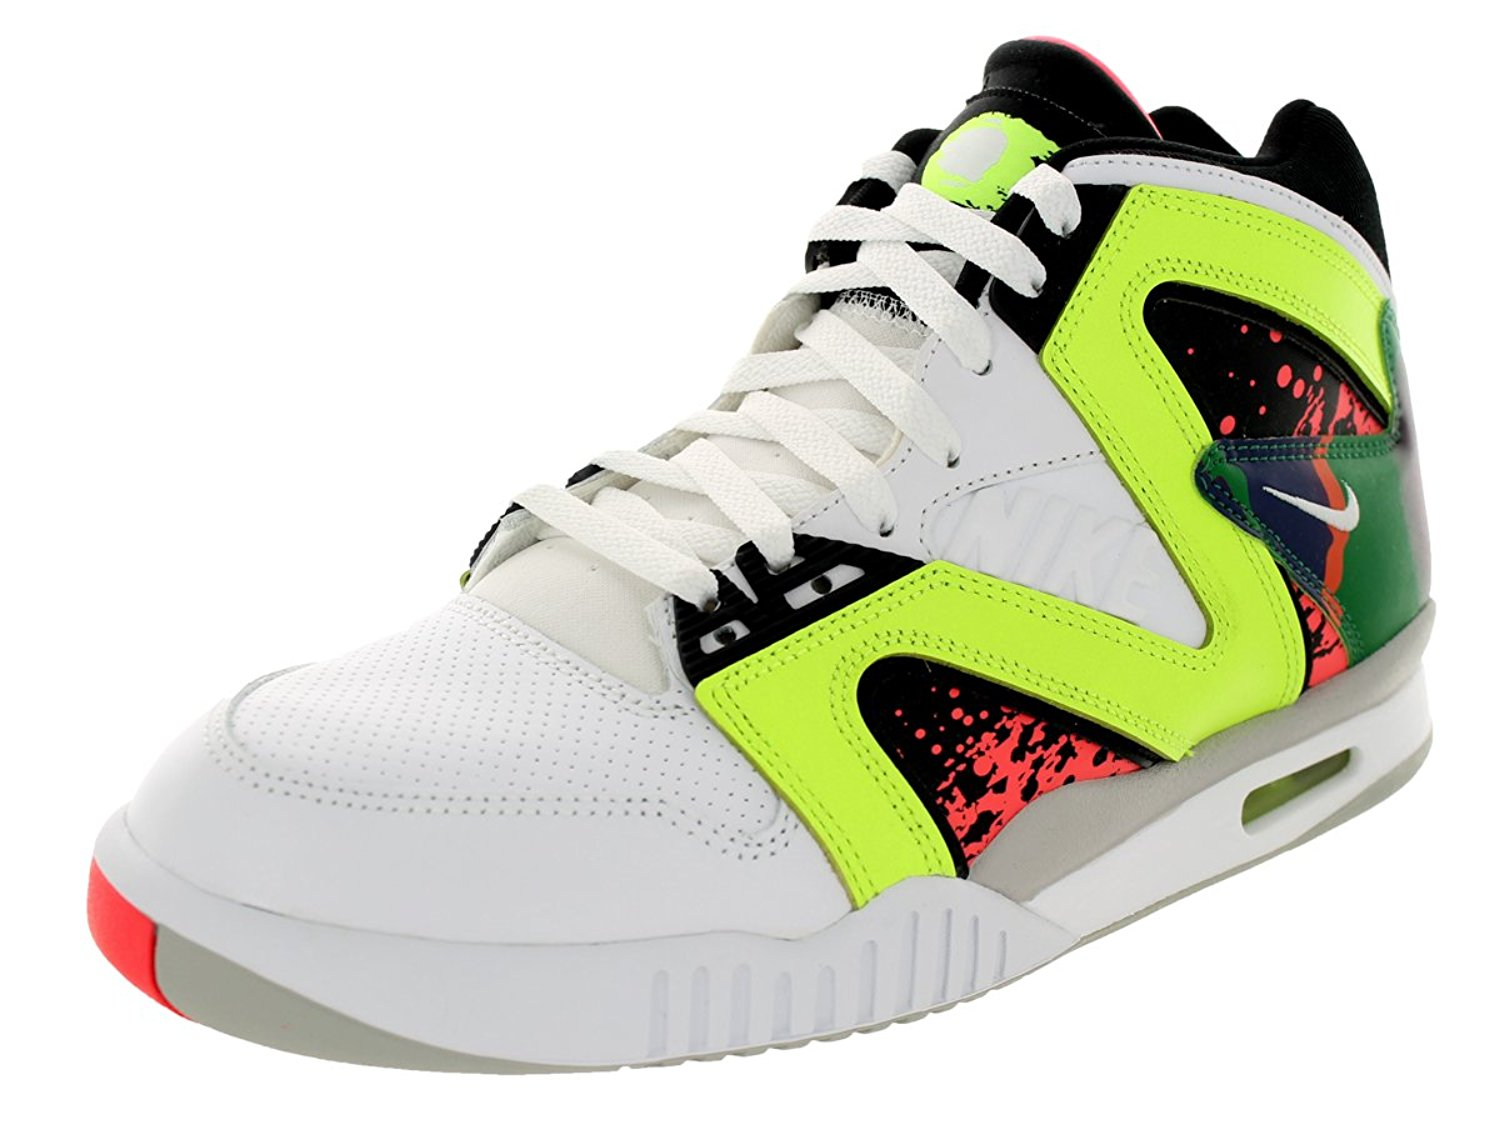 919a5262f0e Get Quotations · nike air tech challenge hybrid mens hi top trainers 653873  sneakers shoes